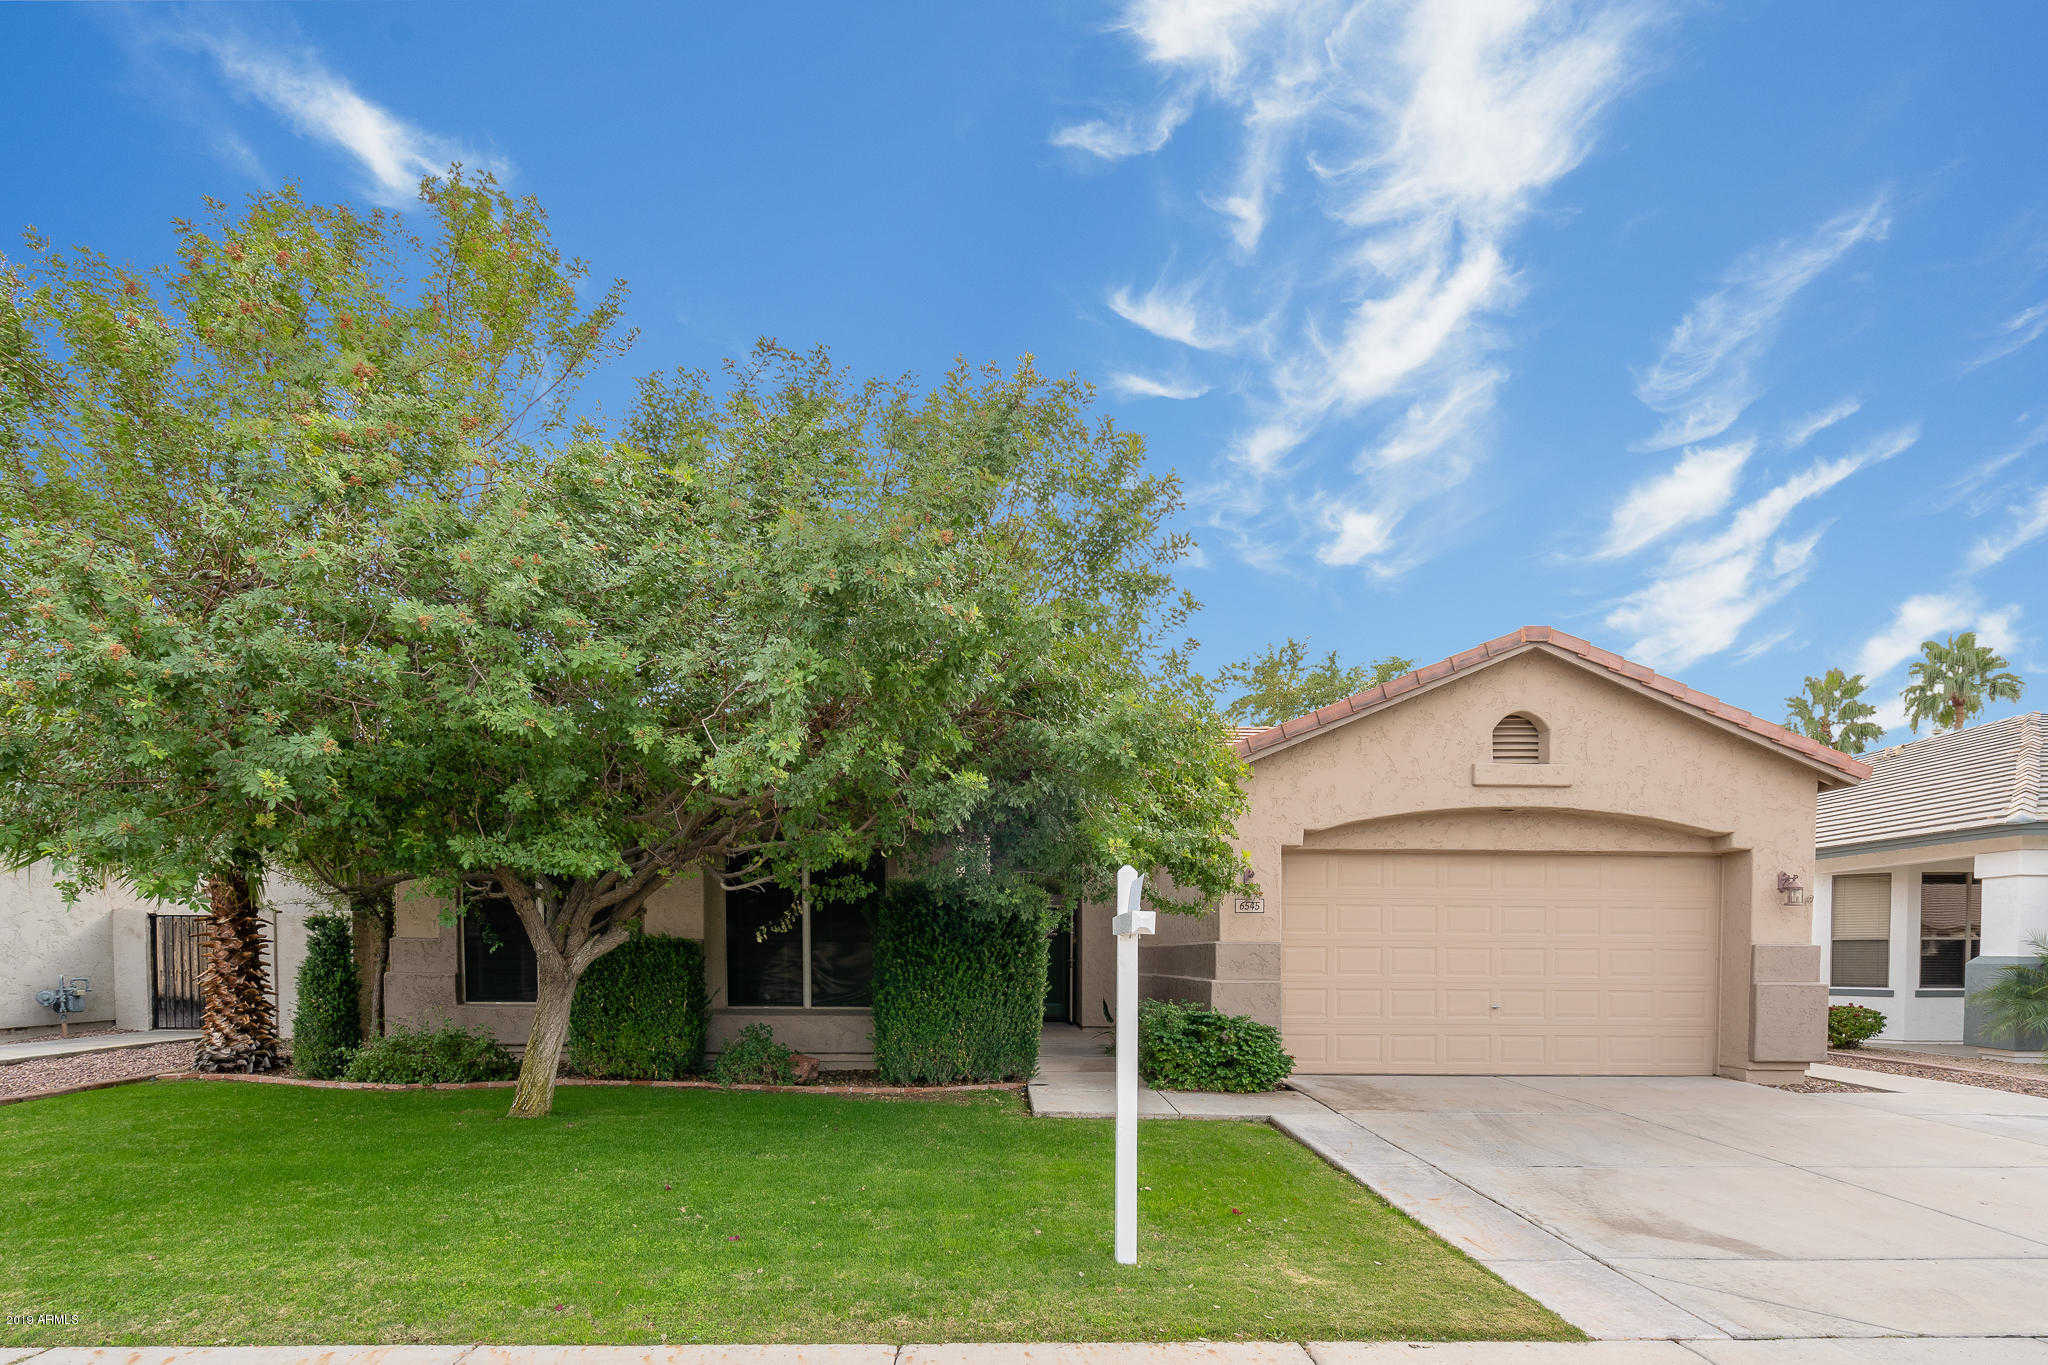 $360,000 - 4Br/2Ba - Home for Sale in Highlands At Arrowhead Ranch, Glendale